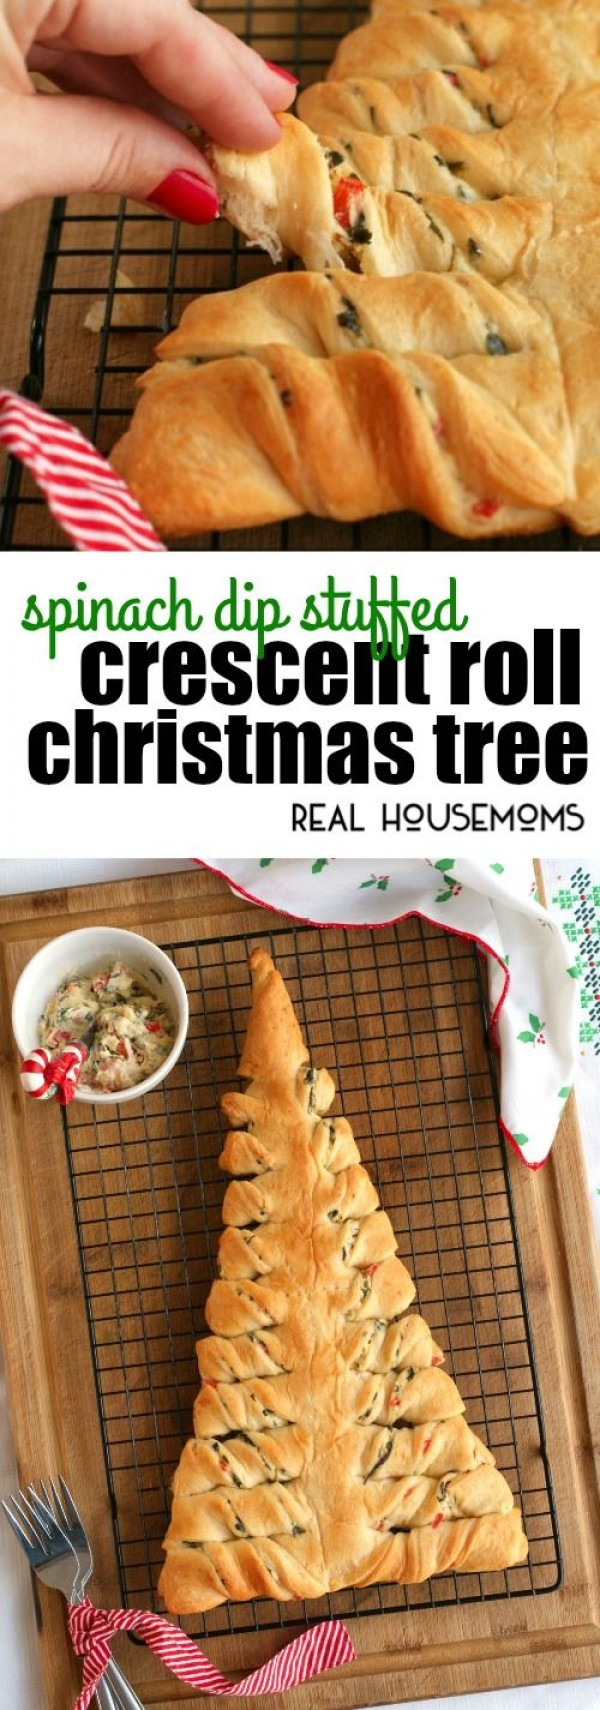 Get the recipe Crescent Roll Christmas Tree @recipes_to_go